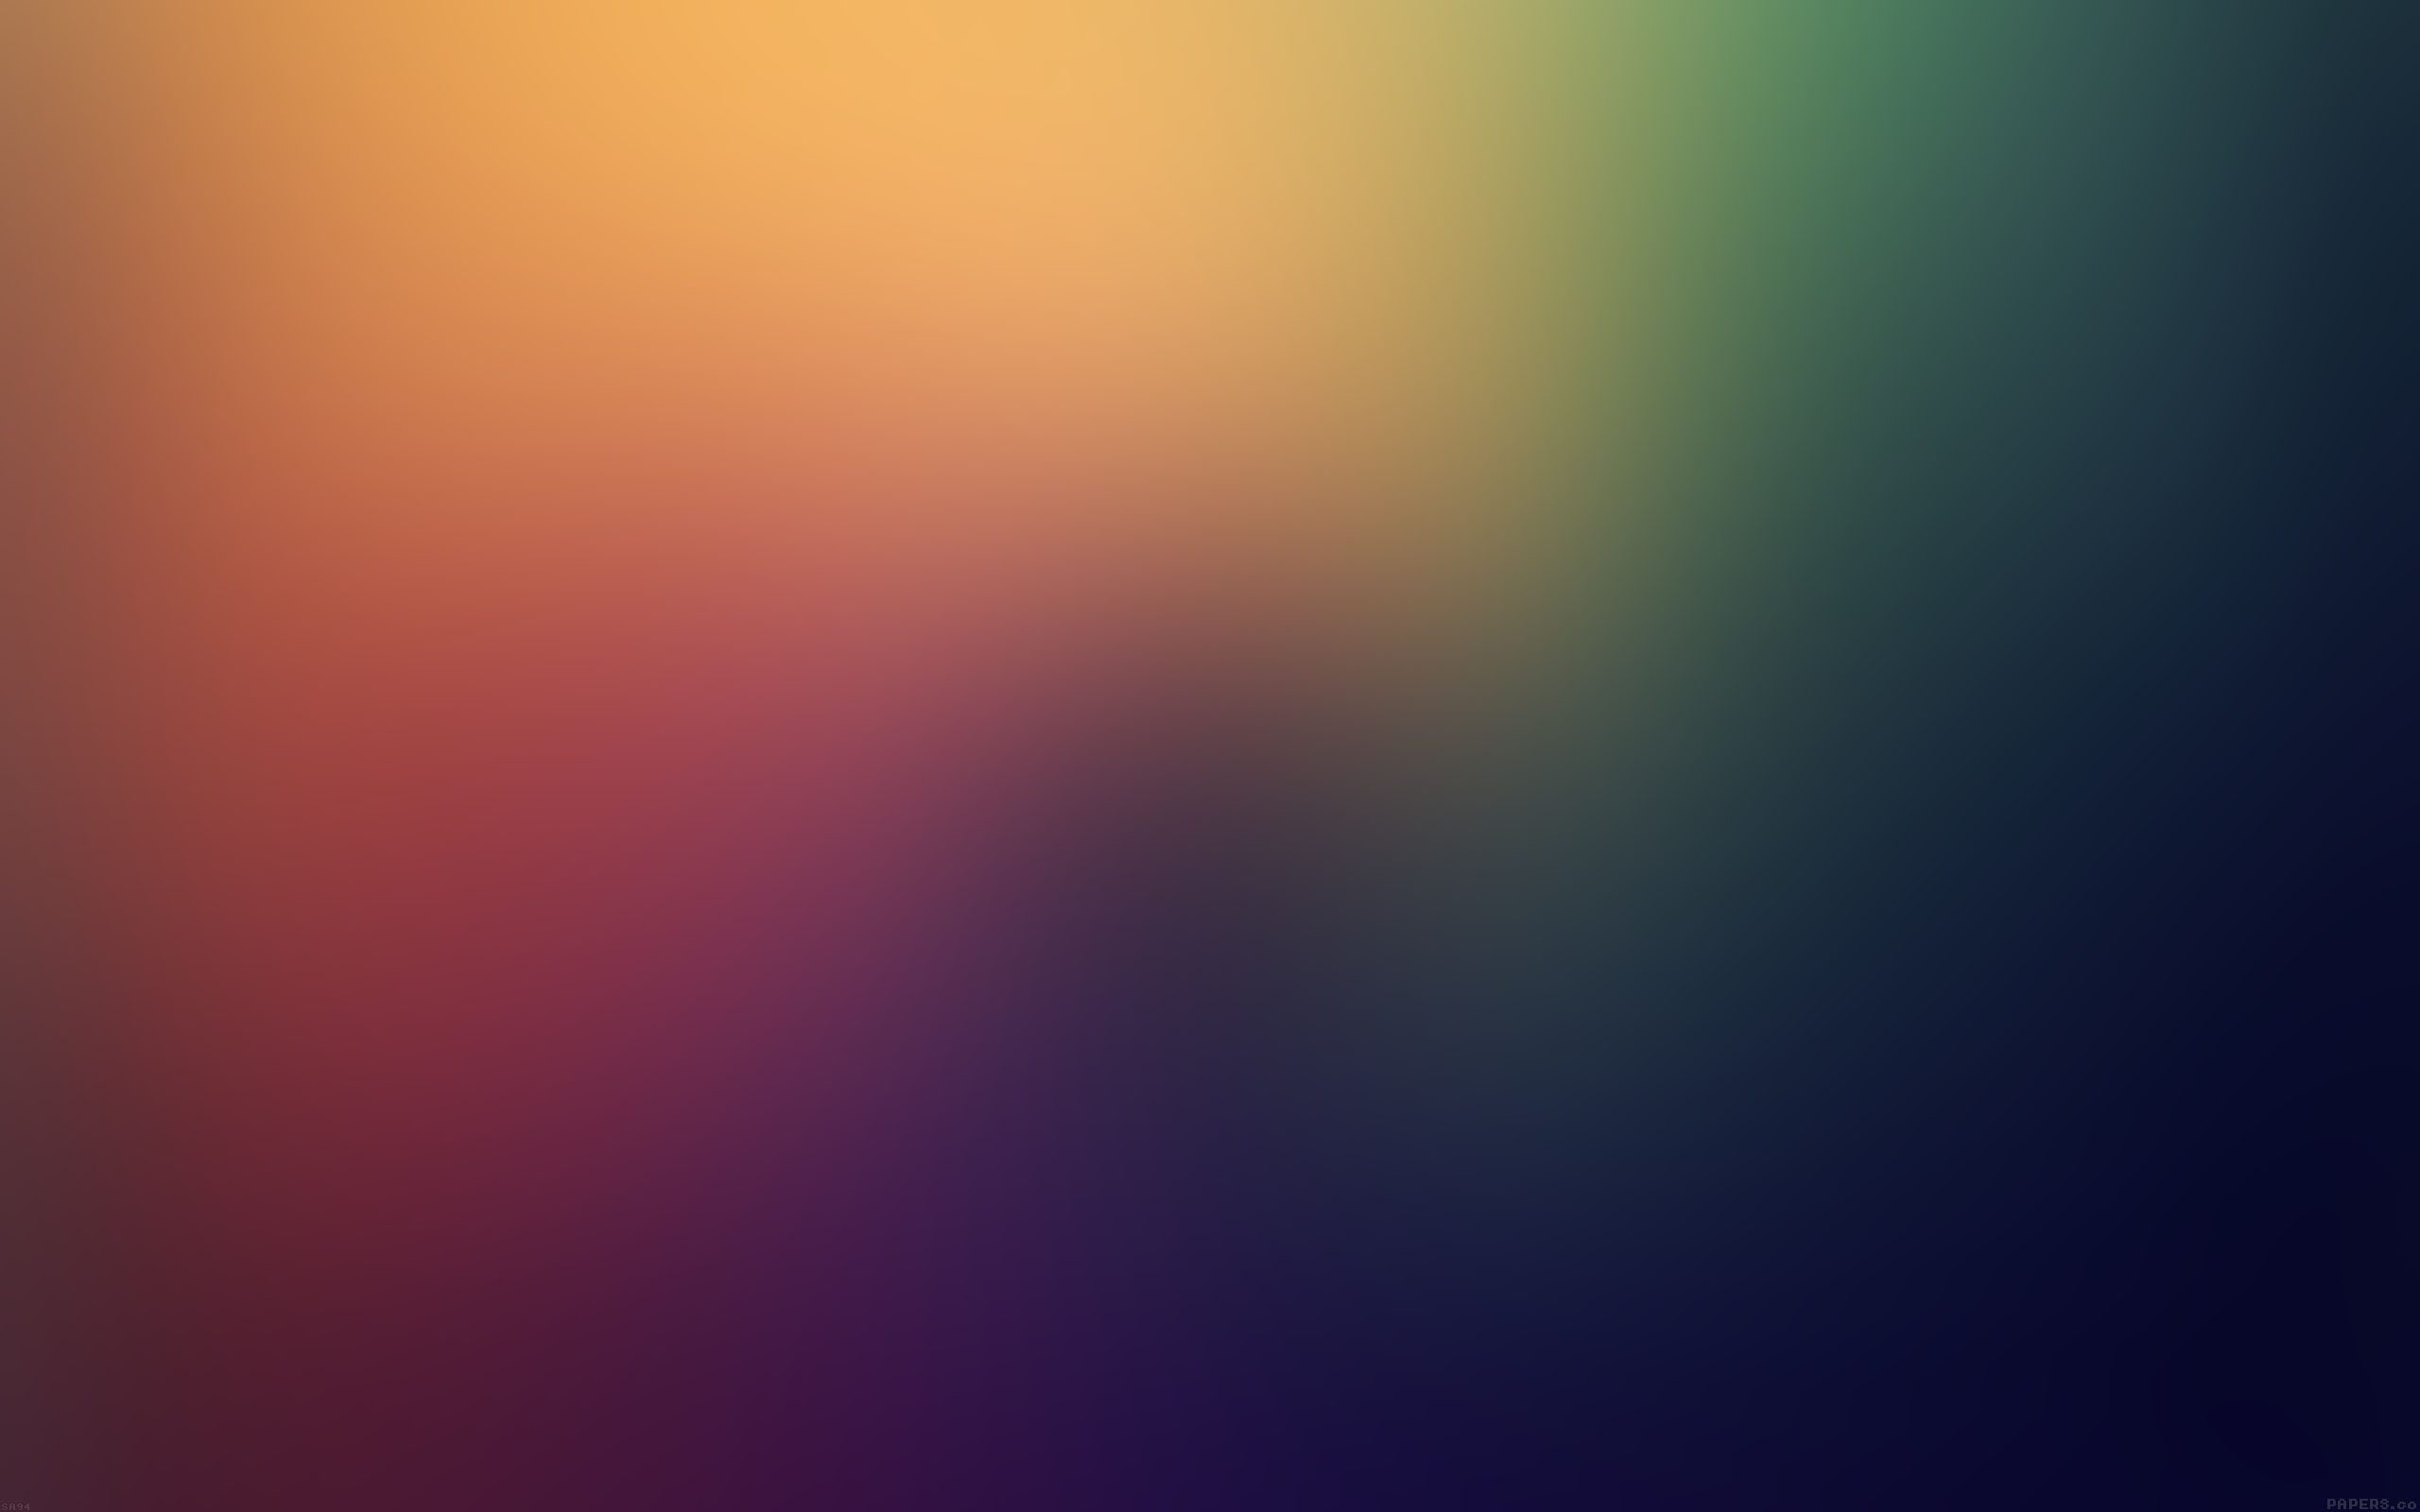 Blur Colors Wallpapers: 3840 X 2160